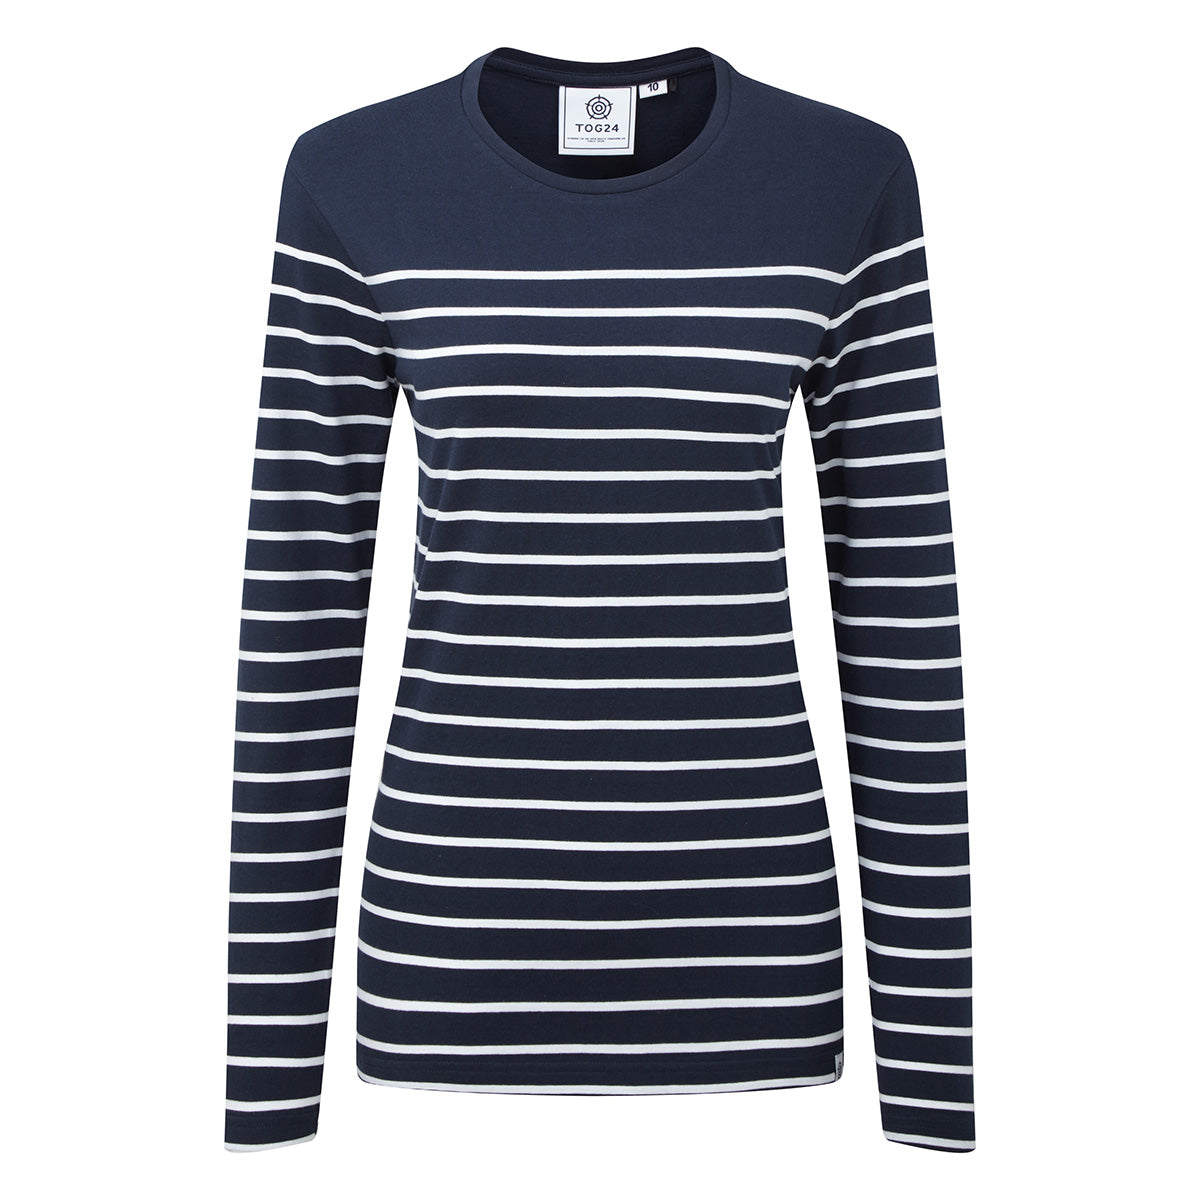 Betsy Womens Long Sleeve Stripe T-Shirt - Dark Indigo/White image 4